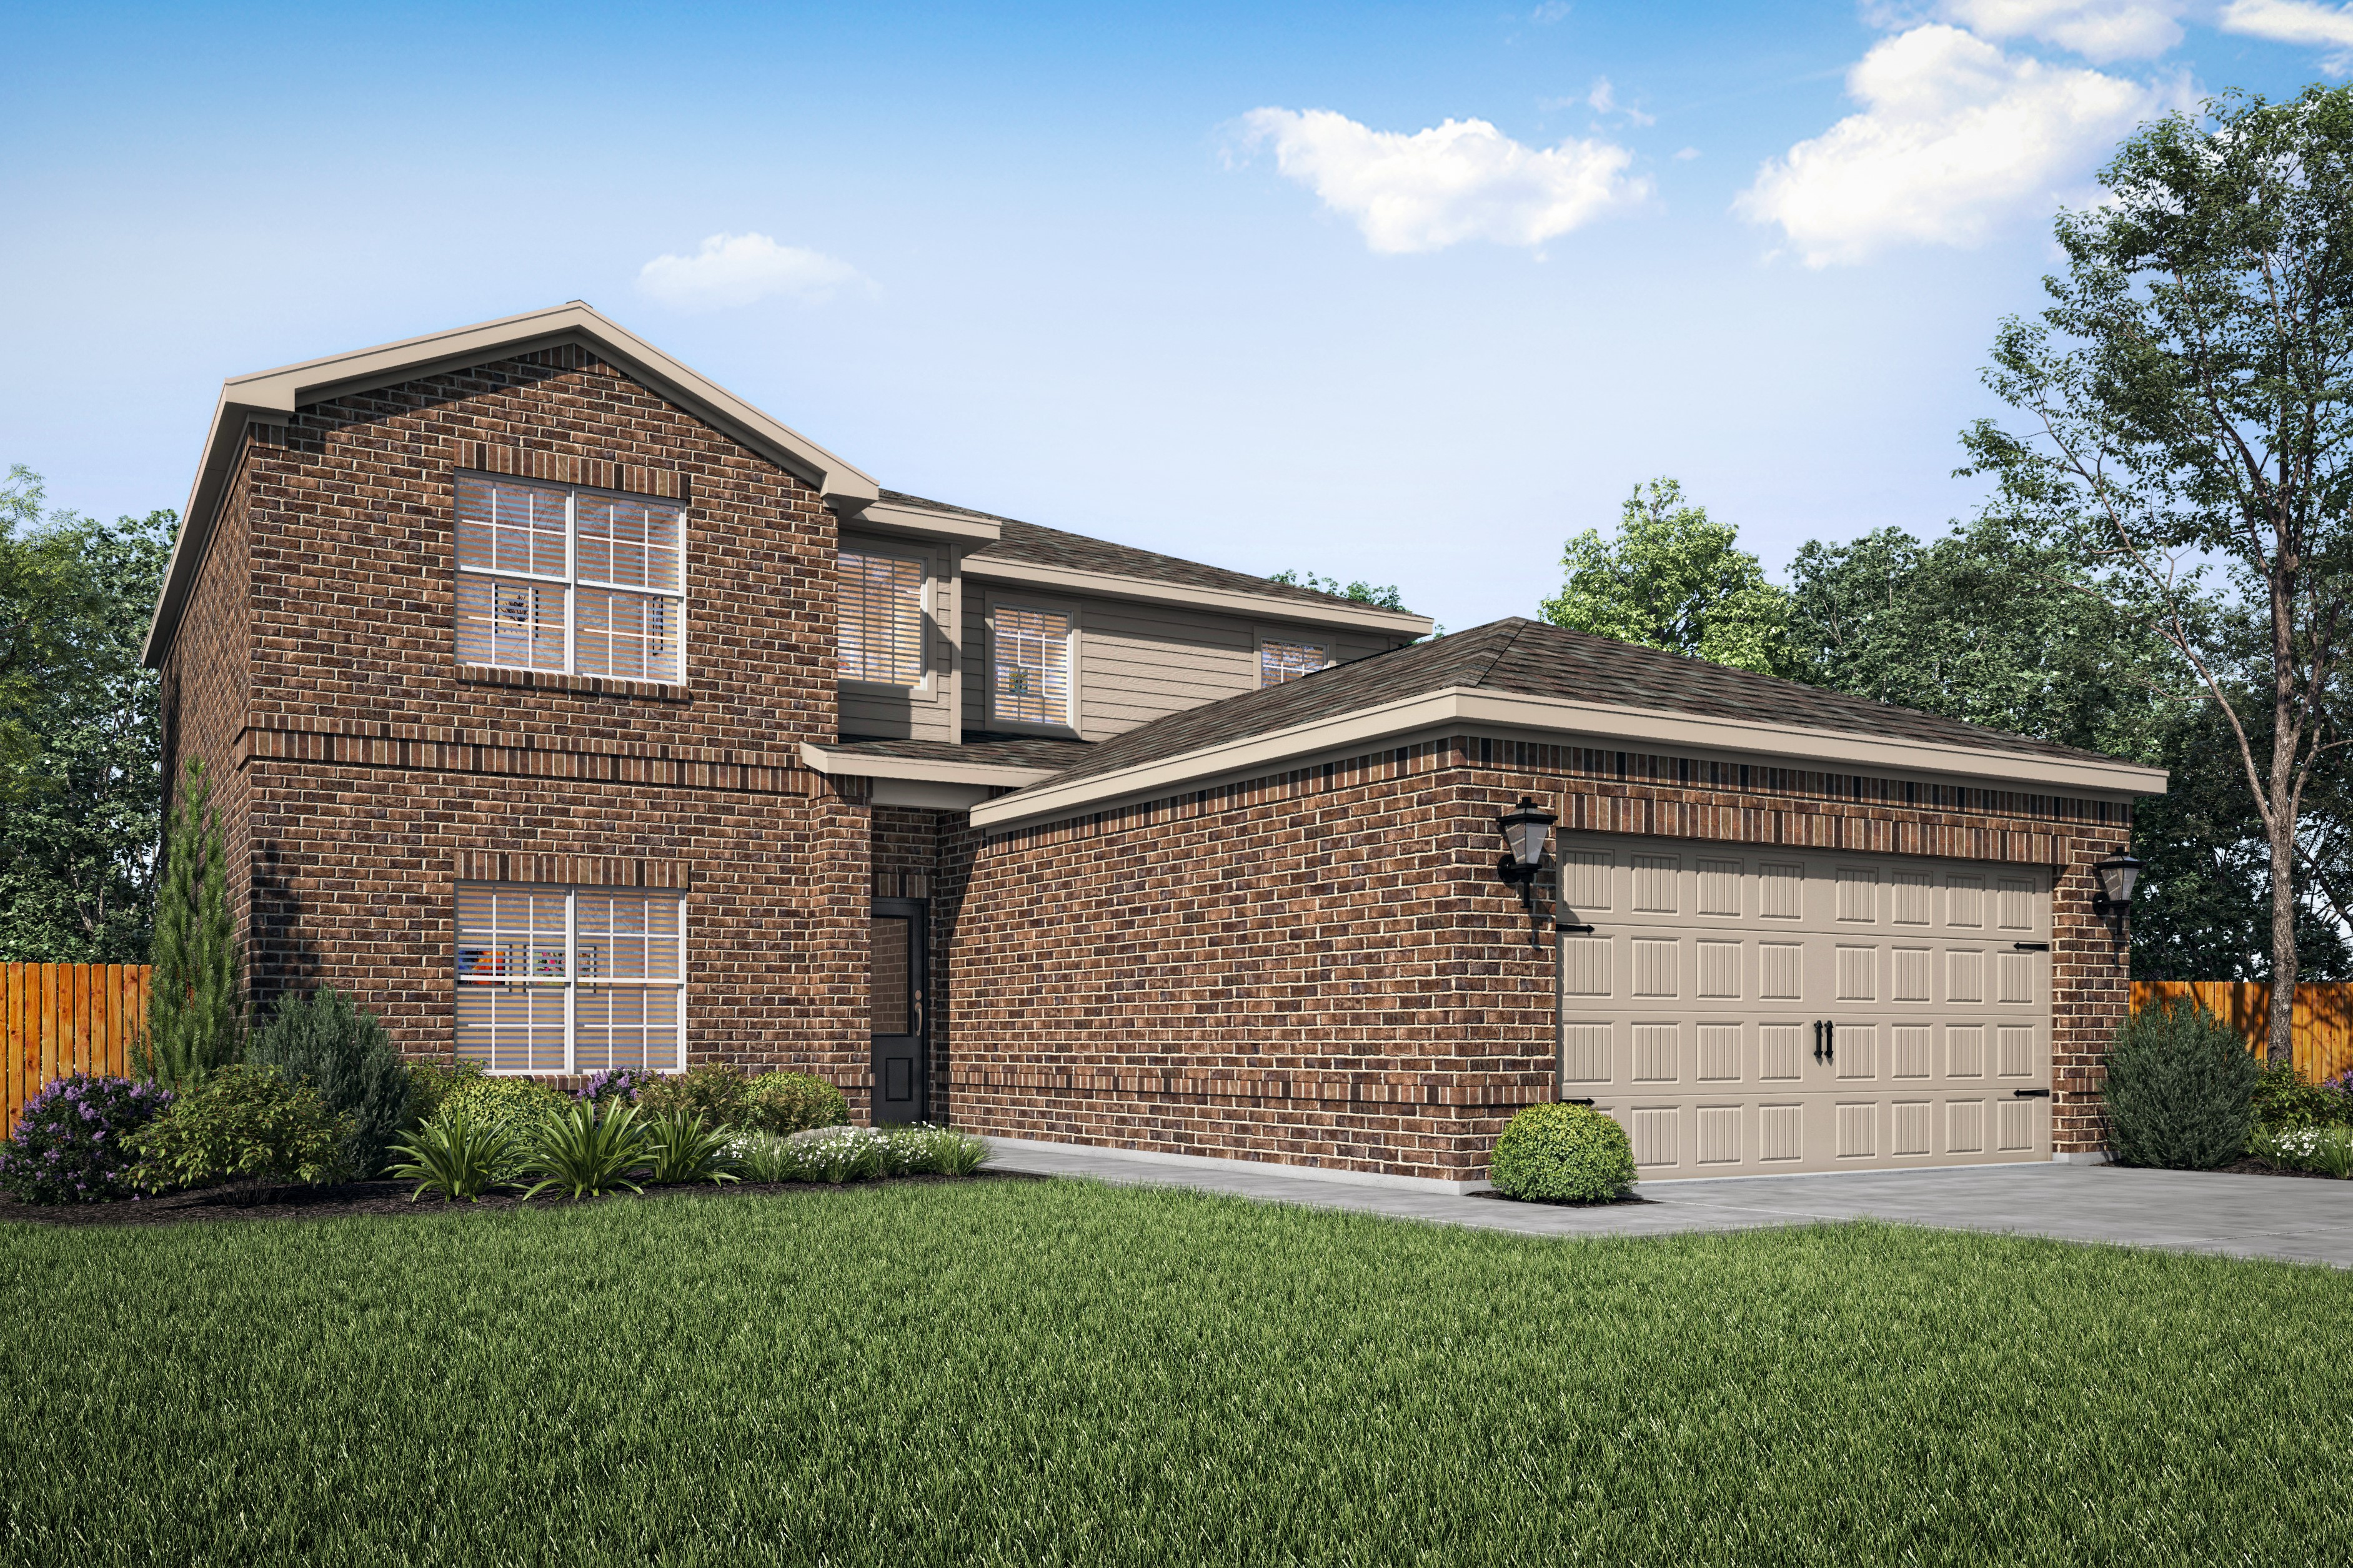 The Oakmont plan is a stunning two-story home at LGI Homes at Shadowbend in Anna, Texas.